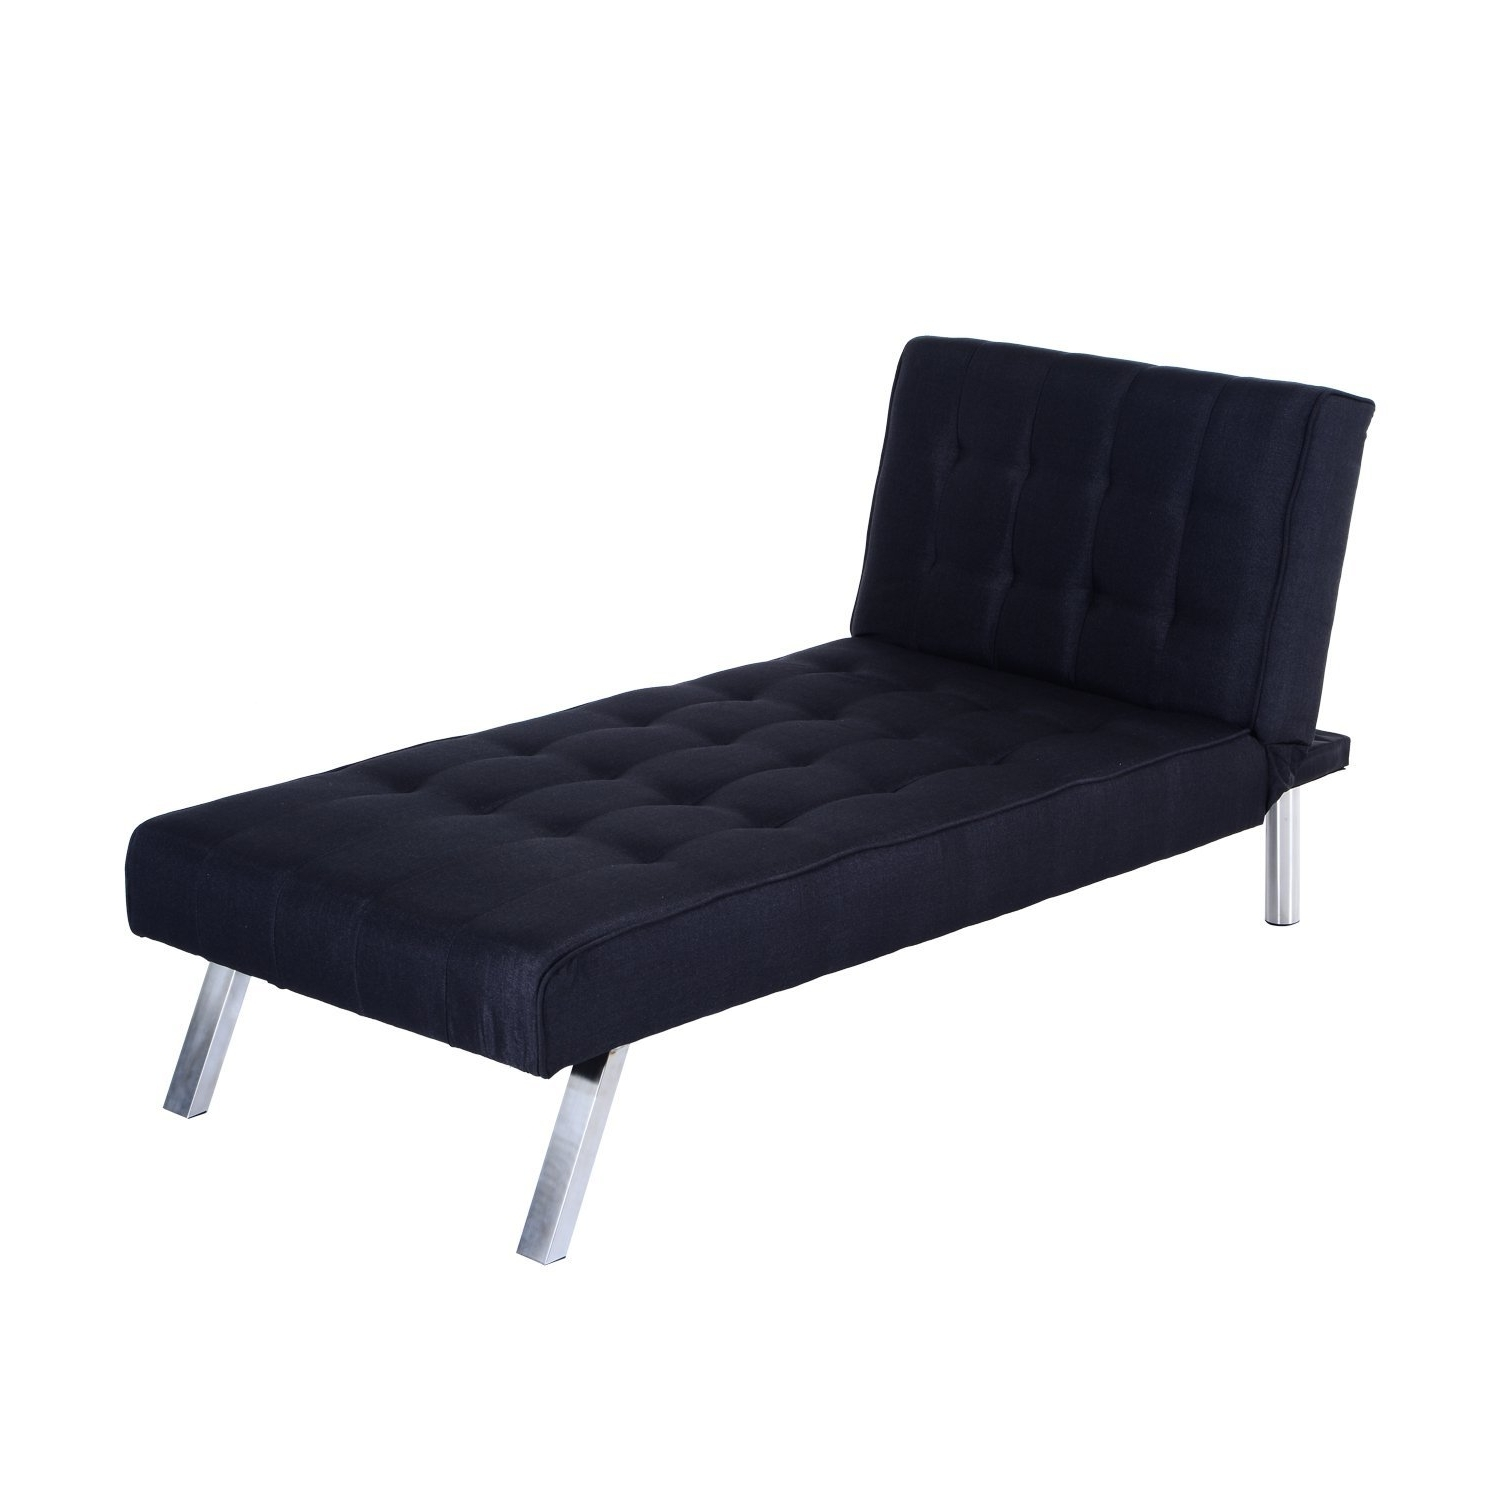 "Amazon: Homcom 70"" Modern Reclining Chaise Lounge Sleeper Sofa Within Best And Newest Chaise Lounge Sleepers (View 6 of 15)"